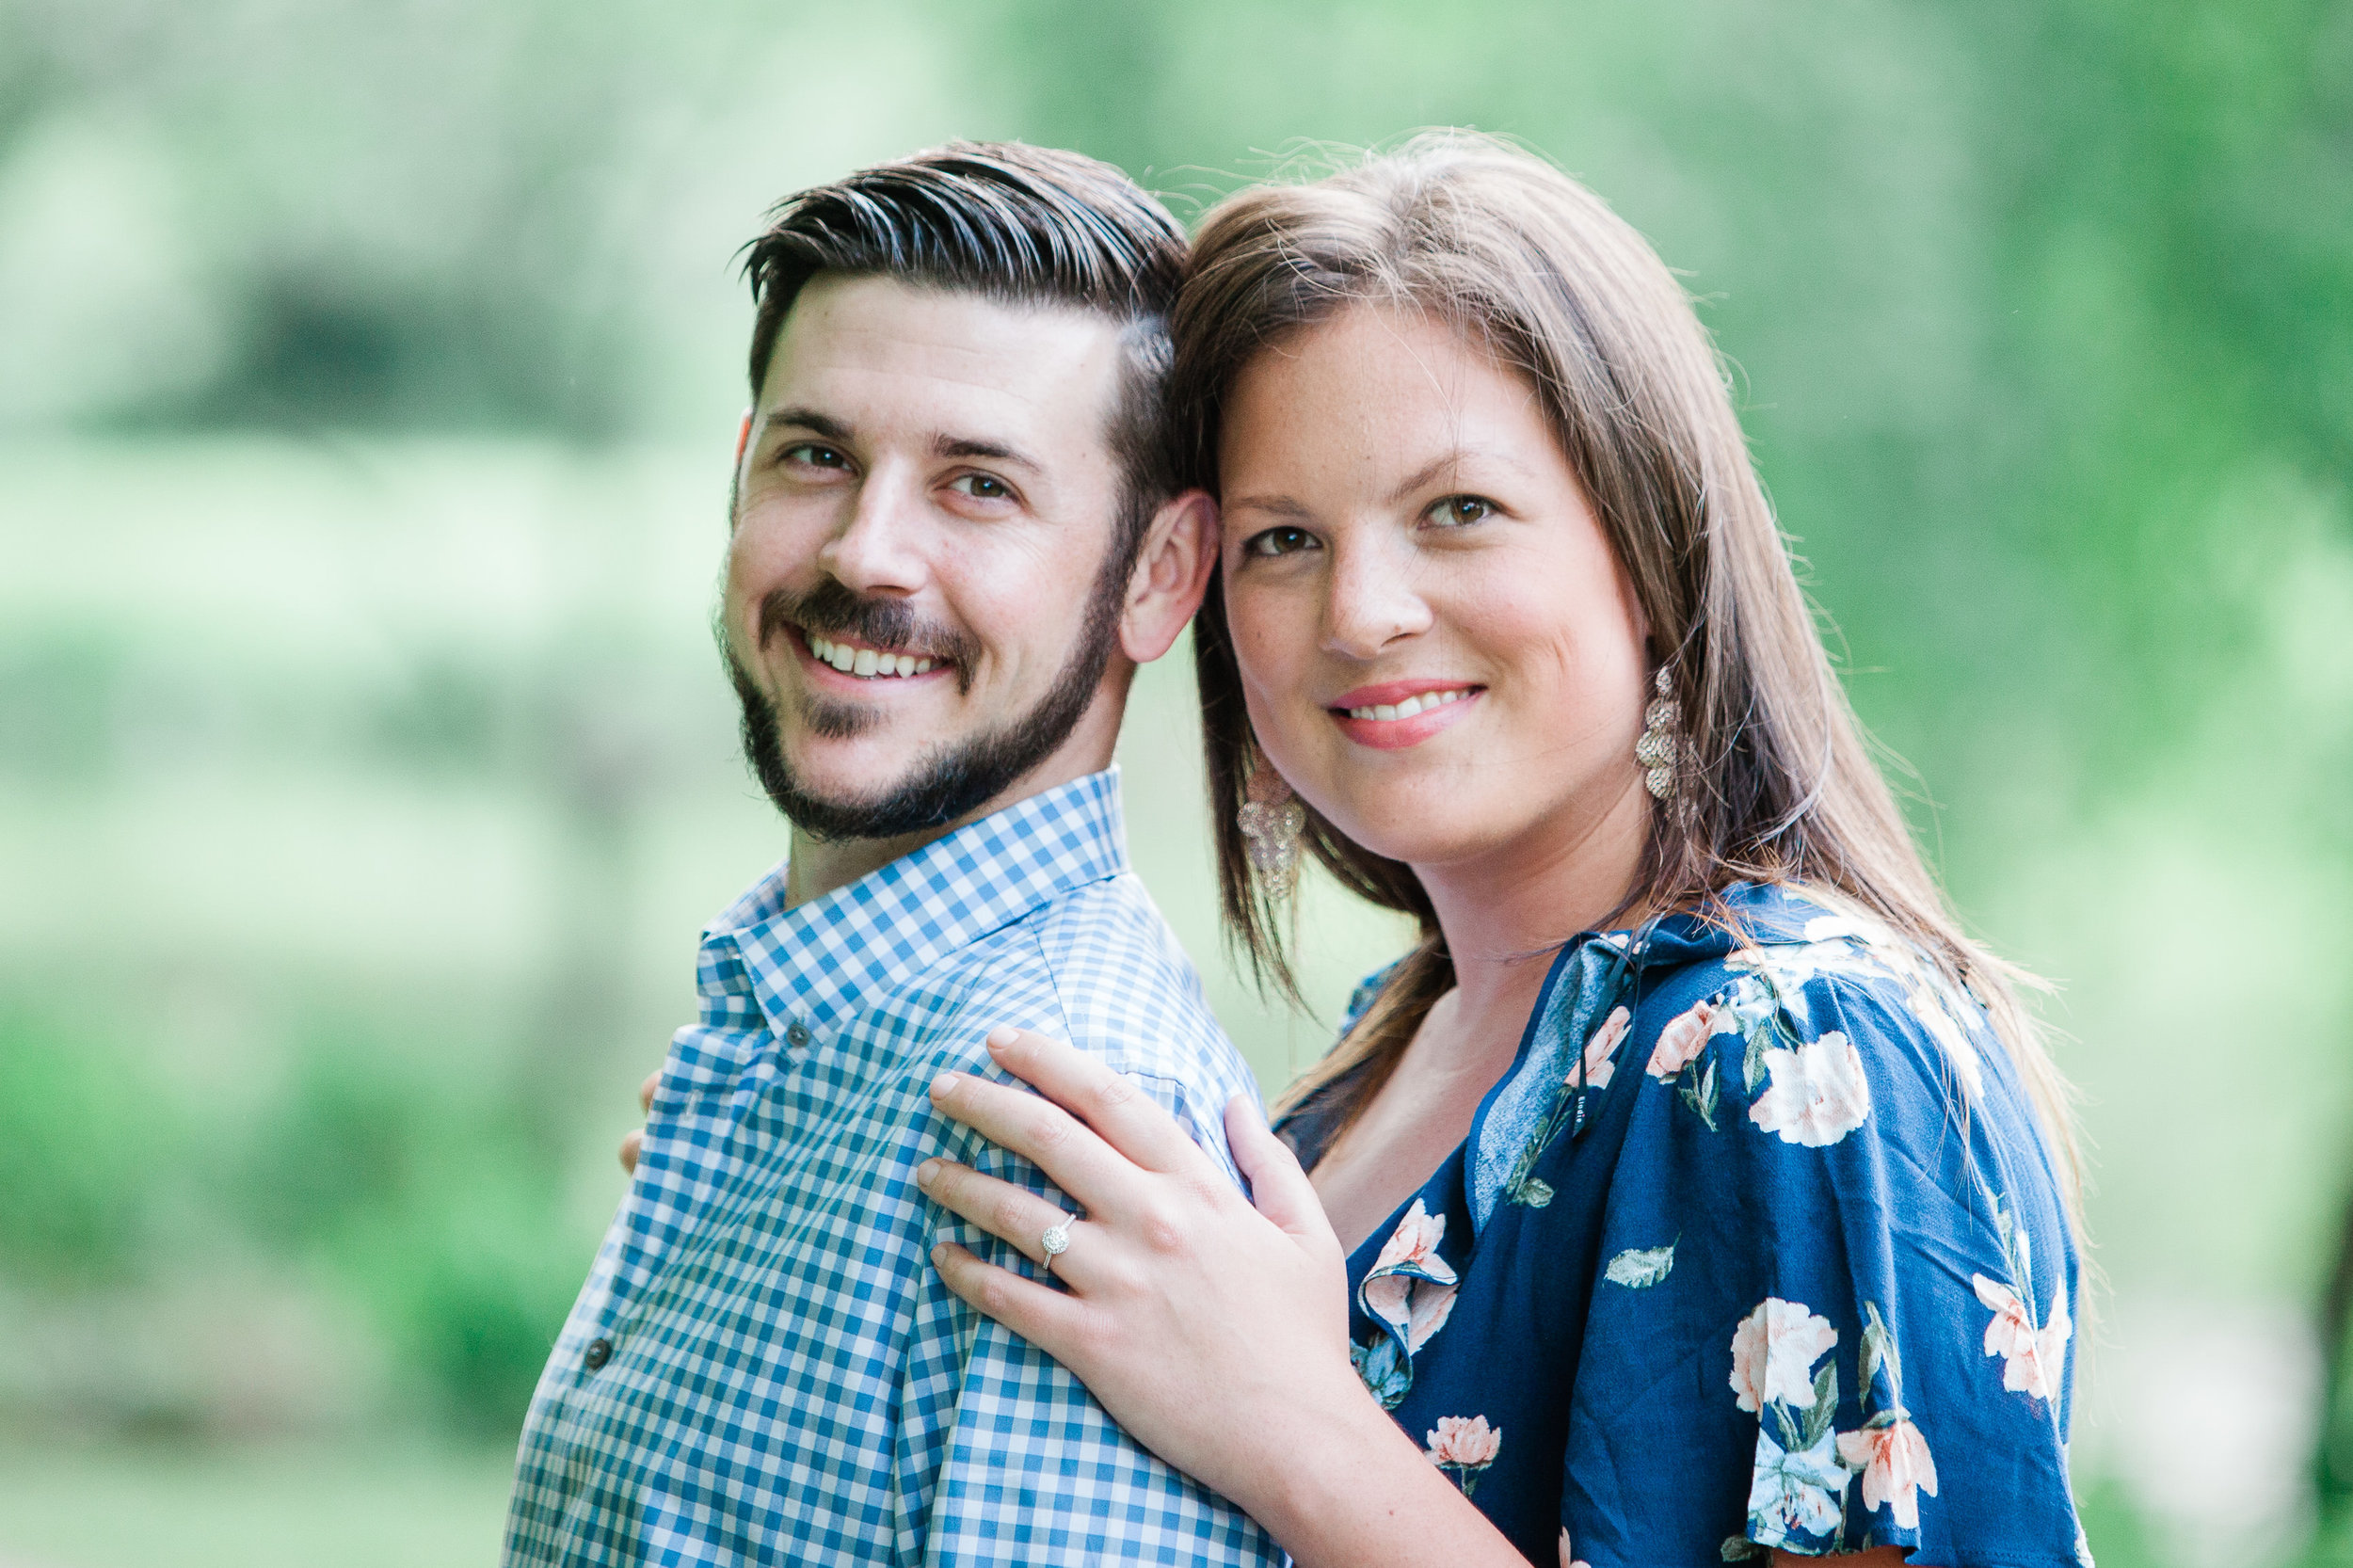 meadowlark_botanical_gardens_engagements-3478.jpg